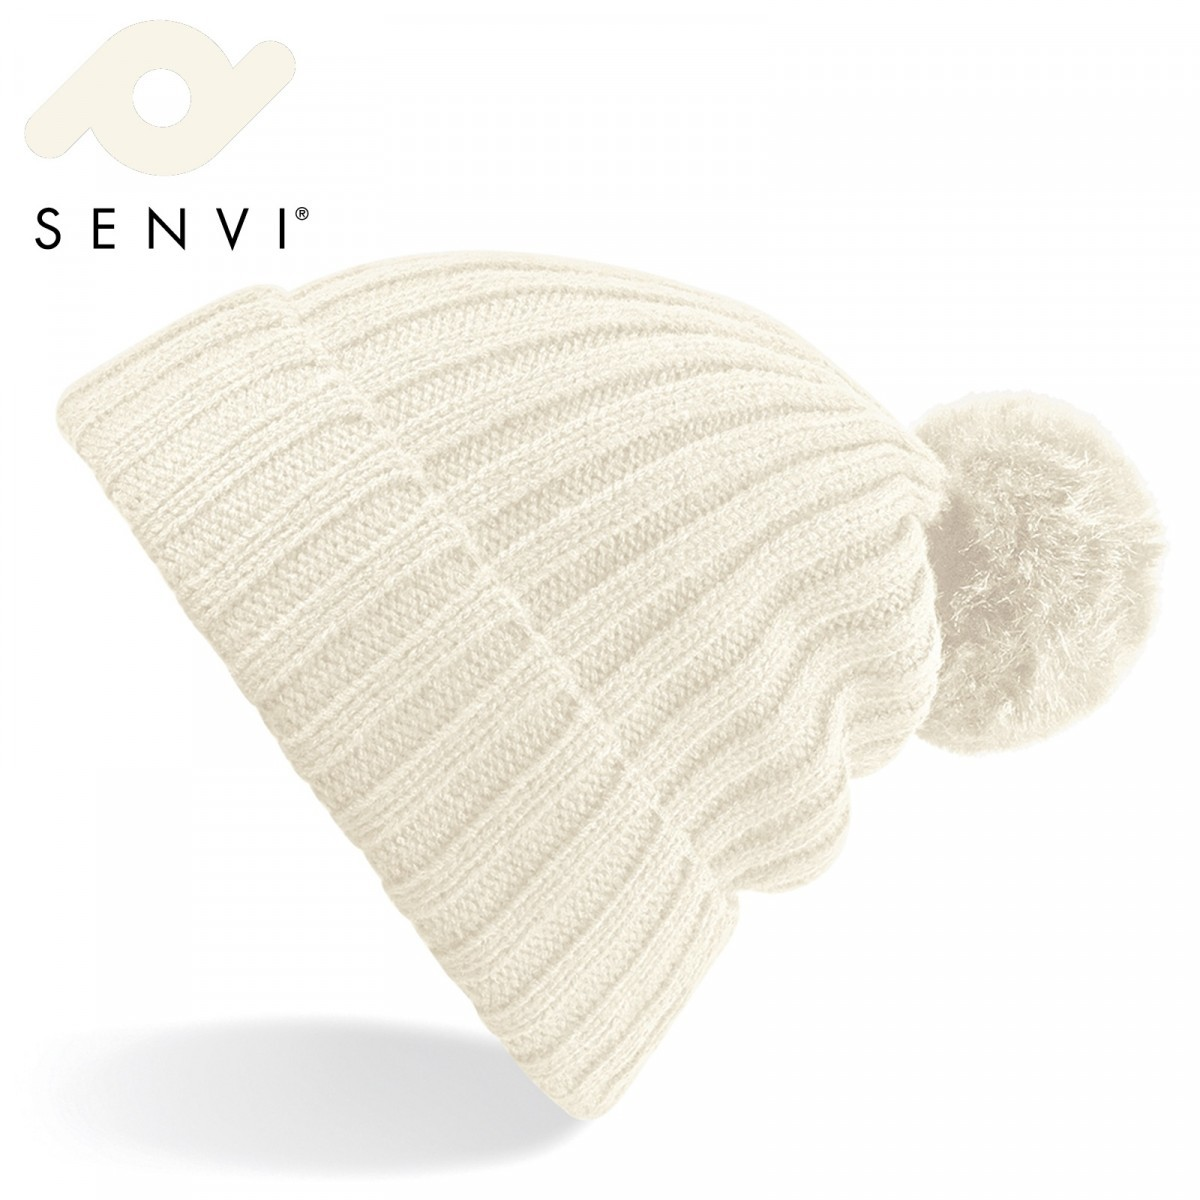 Senvi Arosa Fur Pom Pom Beanie Off Wit (One size fits all)